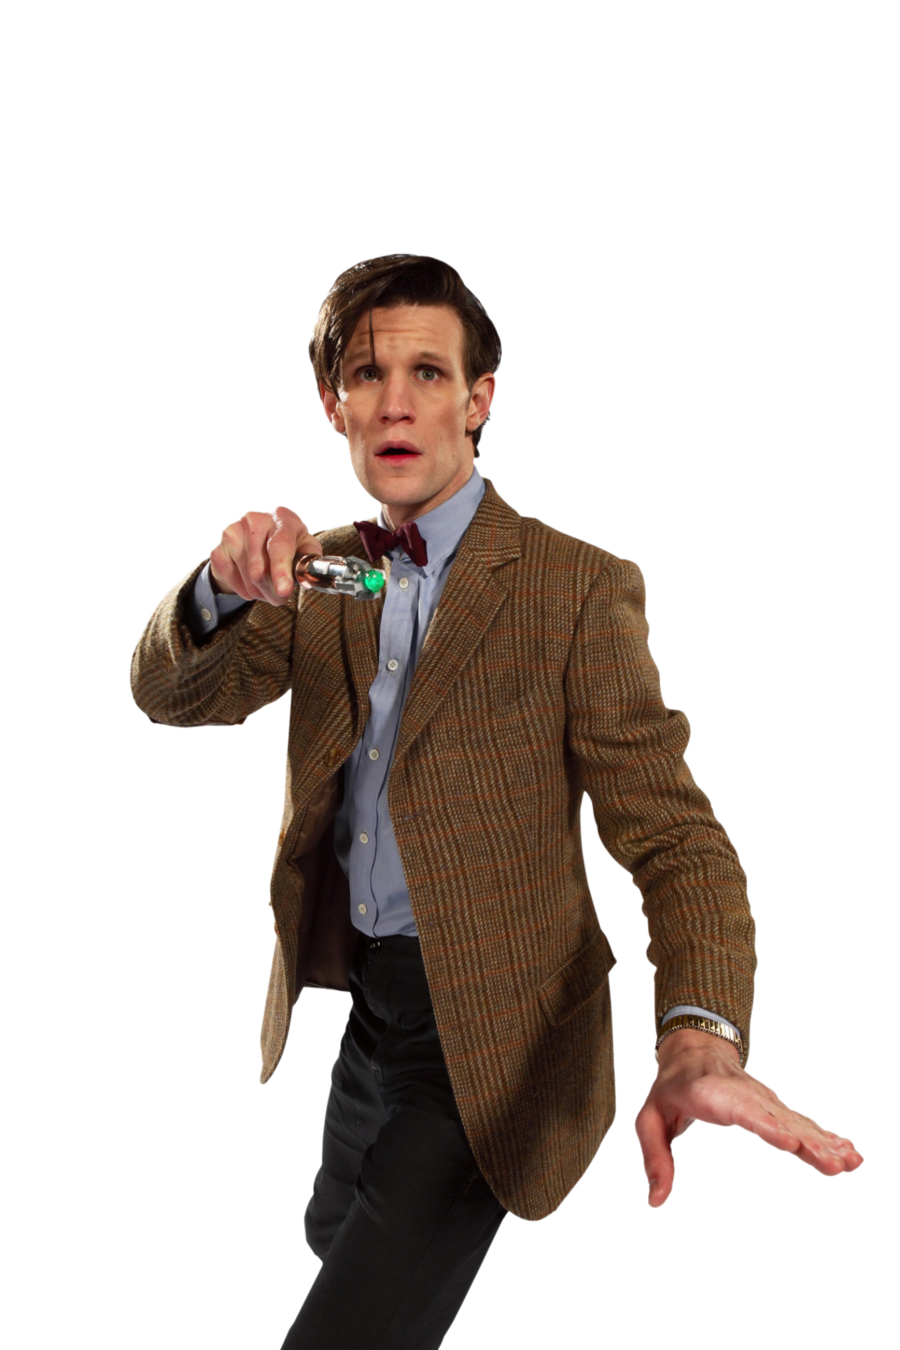 The doctor png. File mart